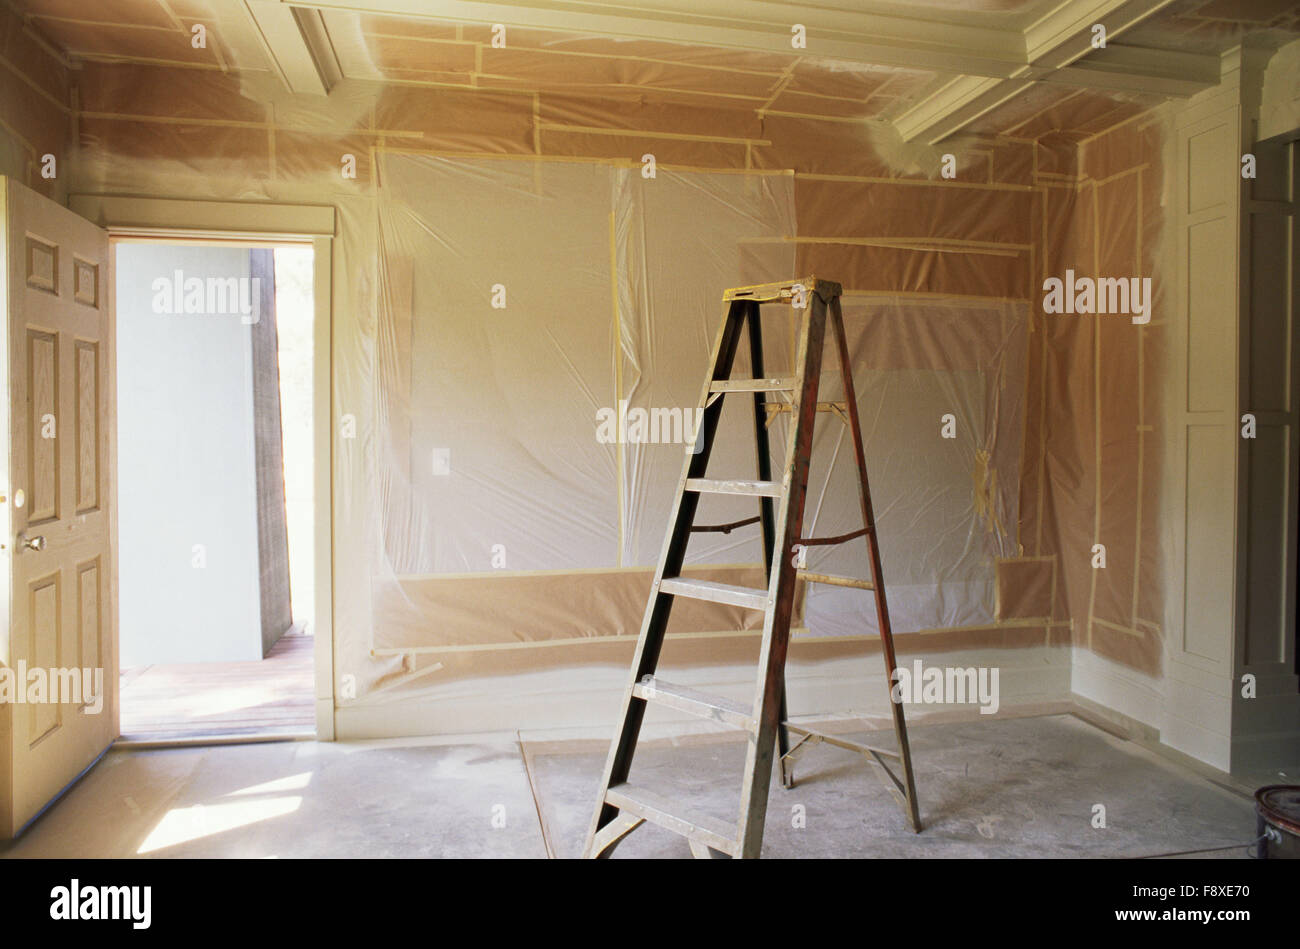 Interior Room Being Painted Stock Photo